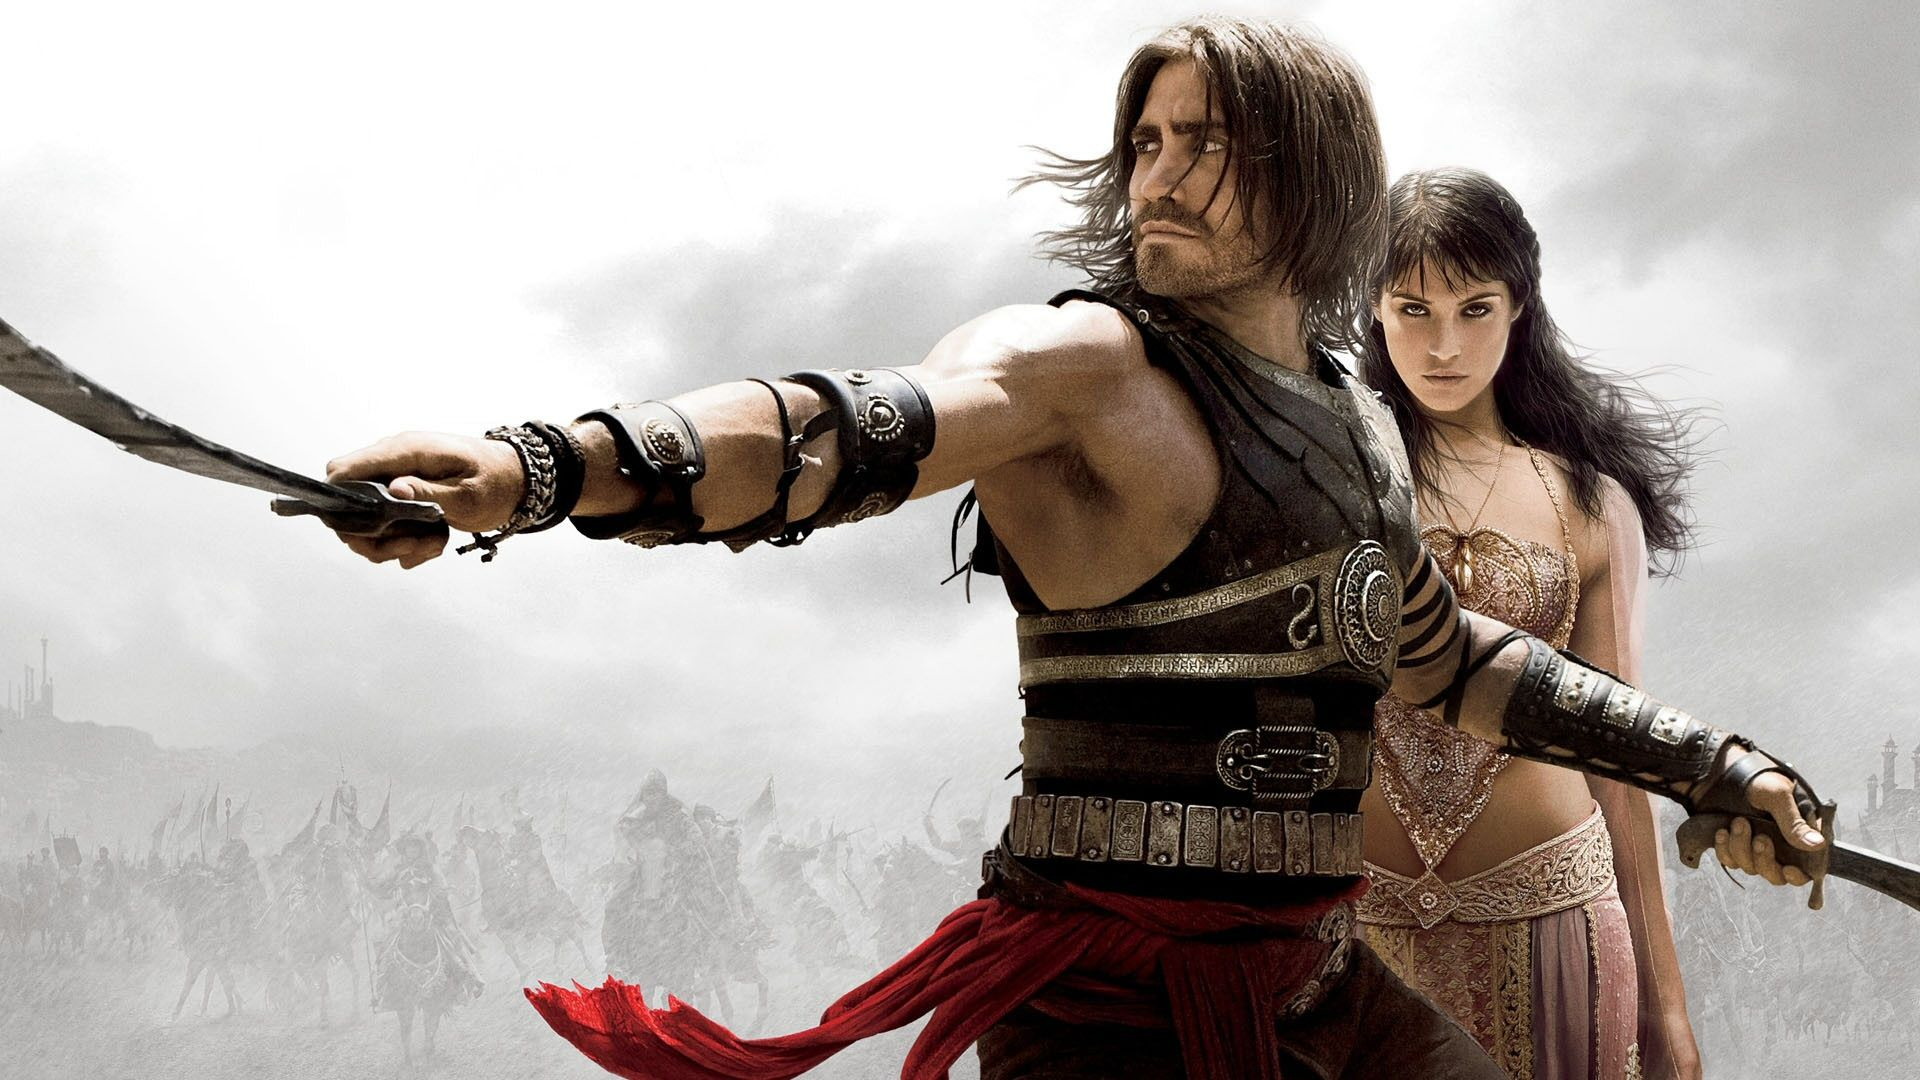 Image for best hd wallpaper gookep prince of persia image picture awesome amazing shoot photography